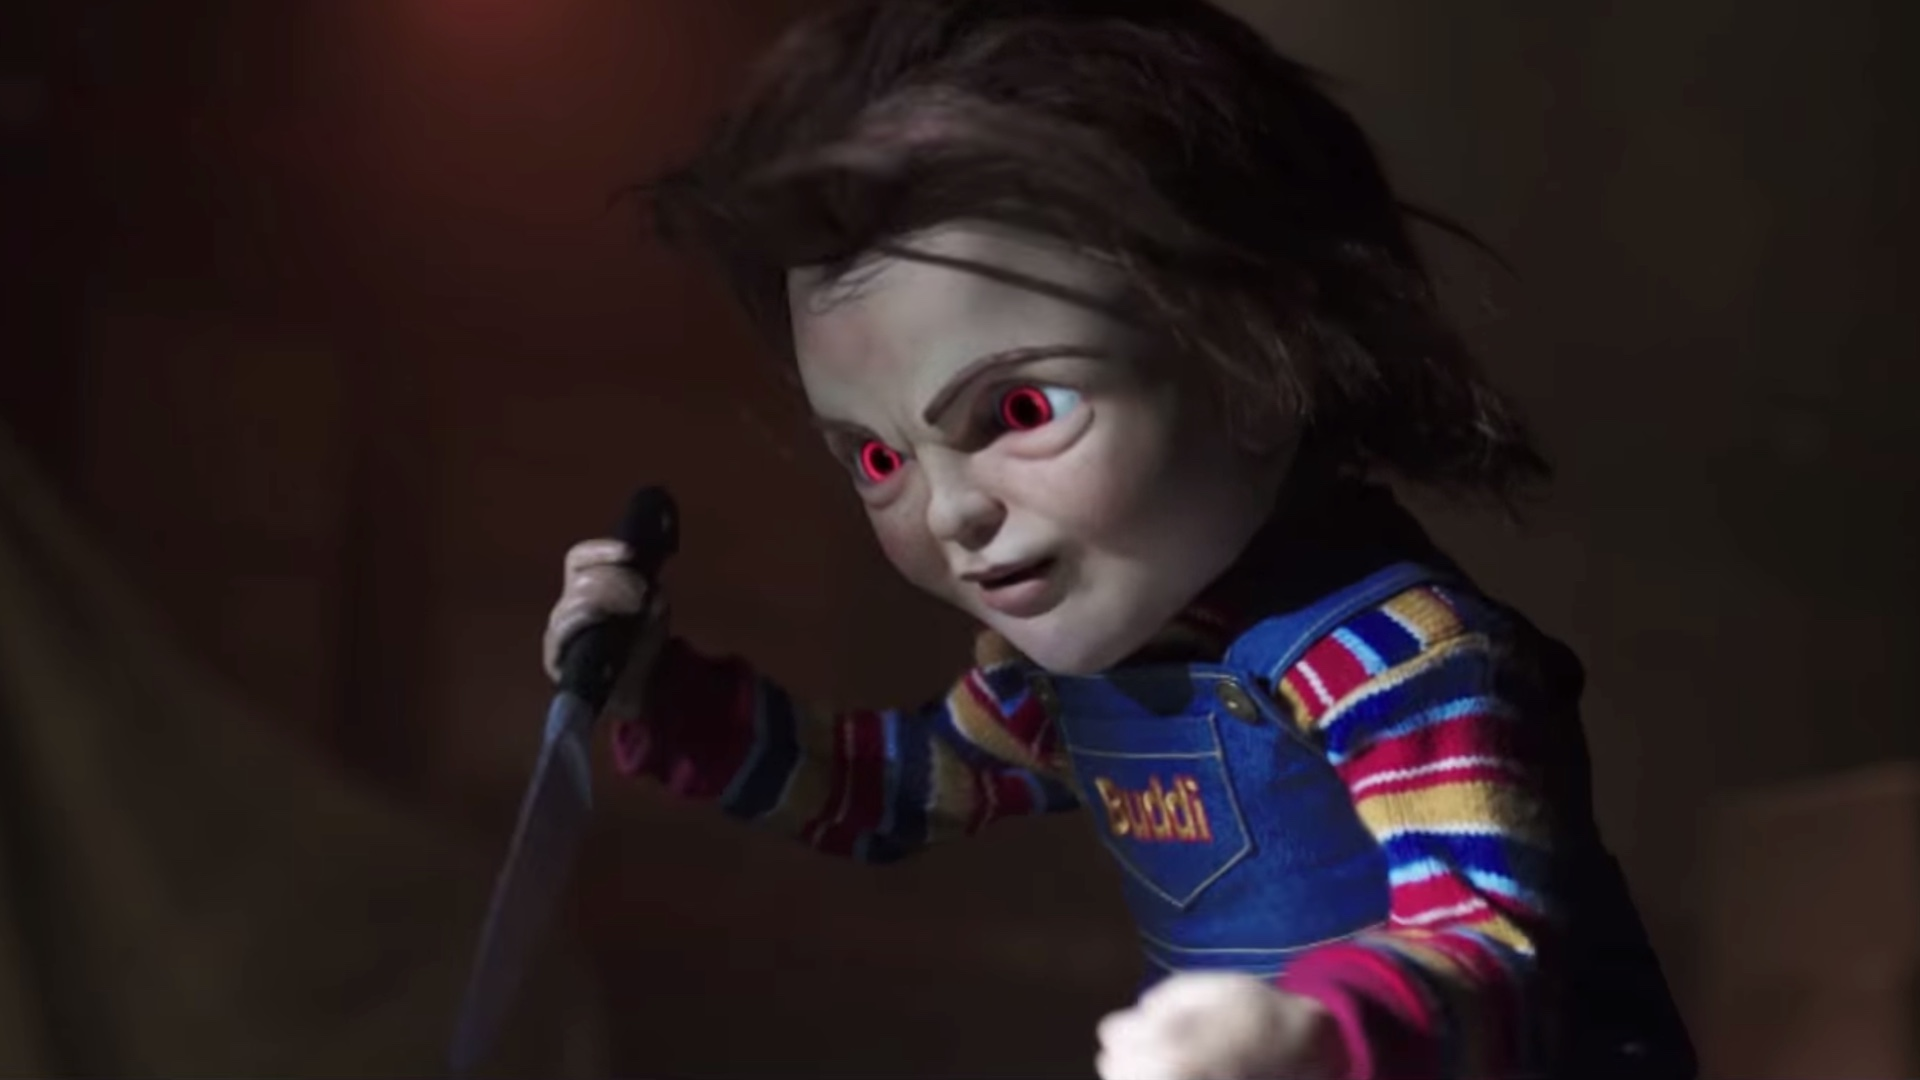 Pictures of the new chucky